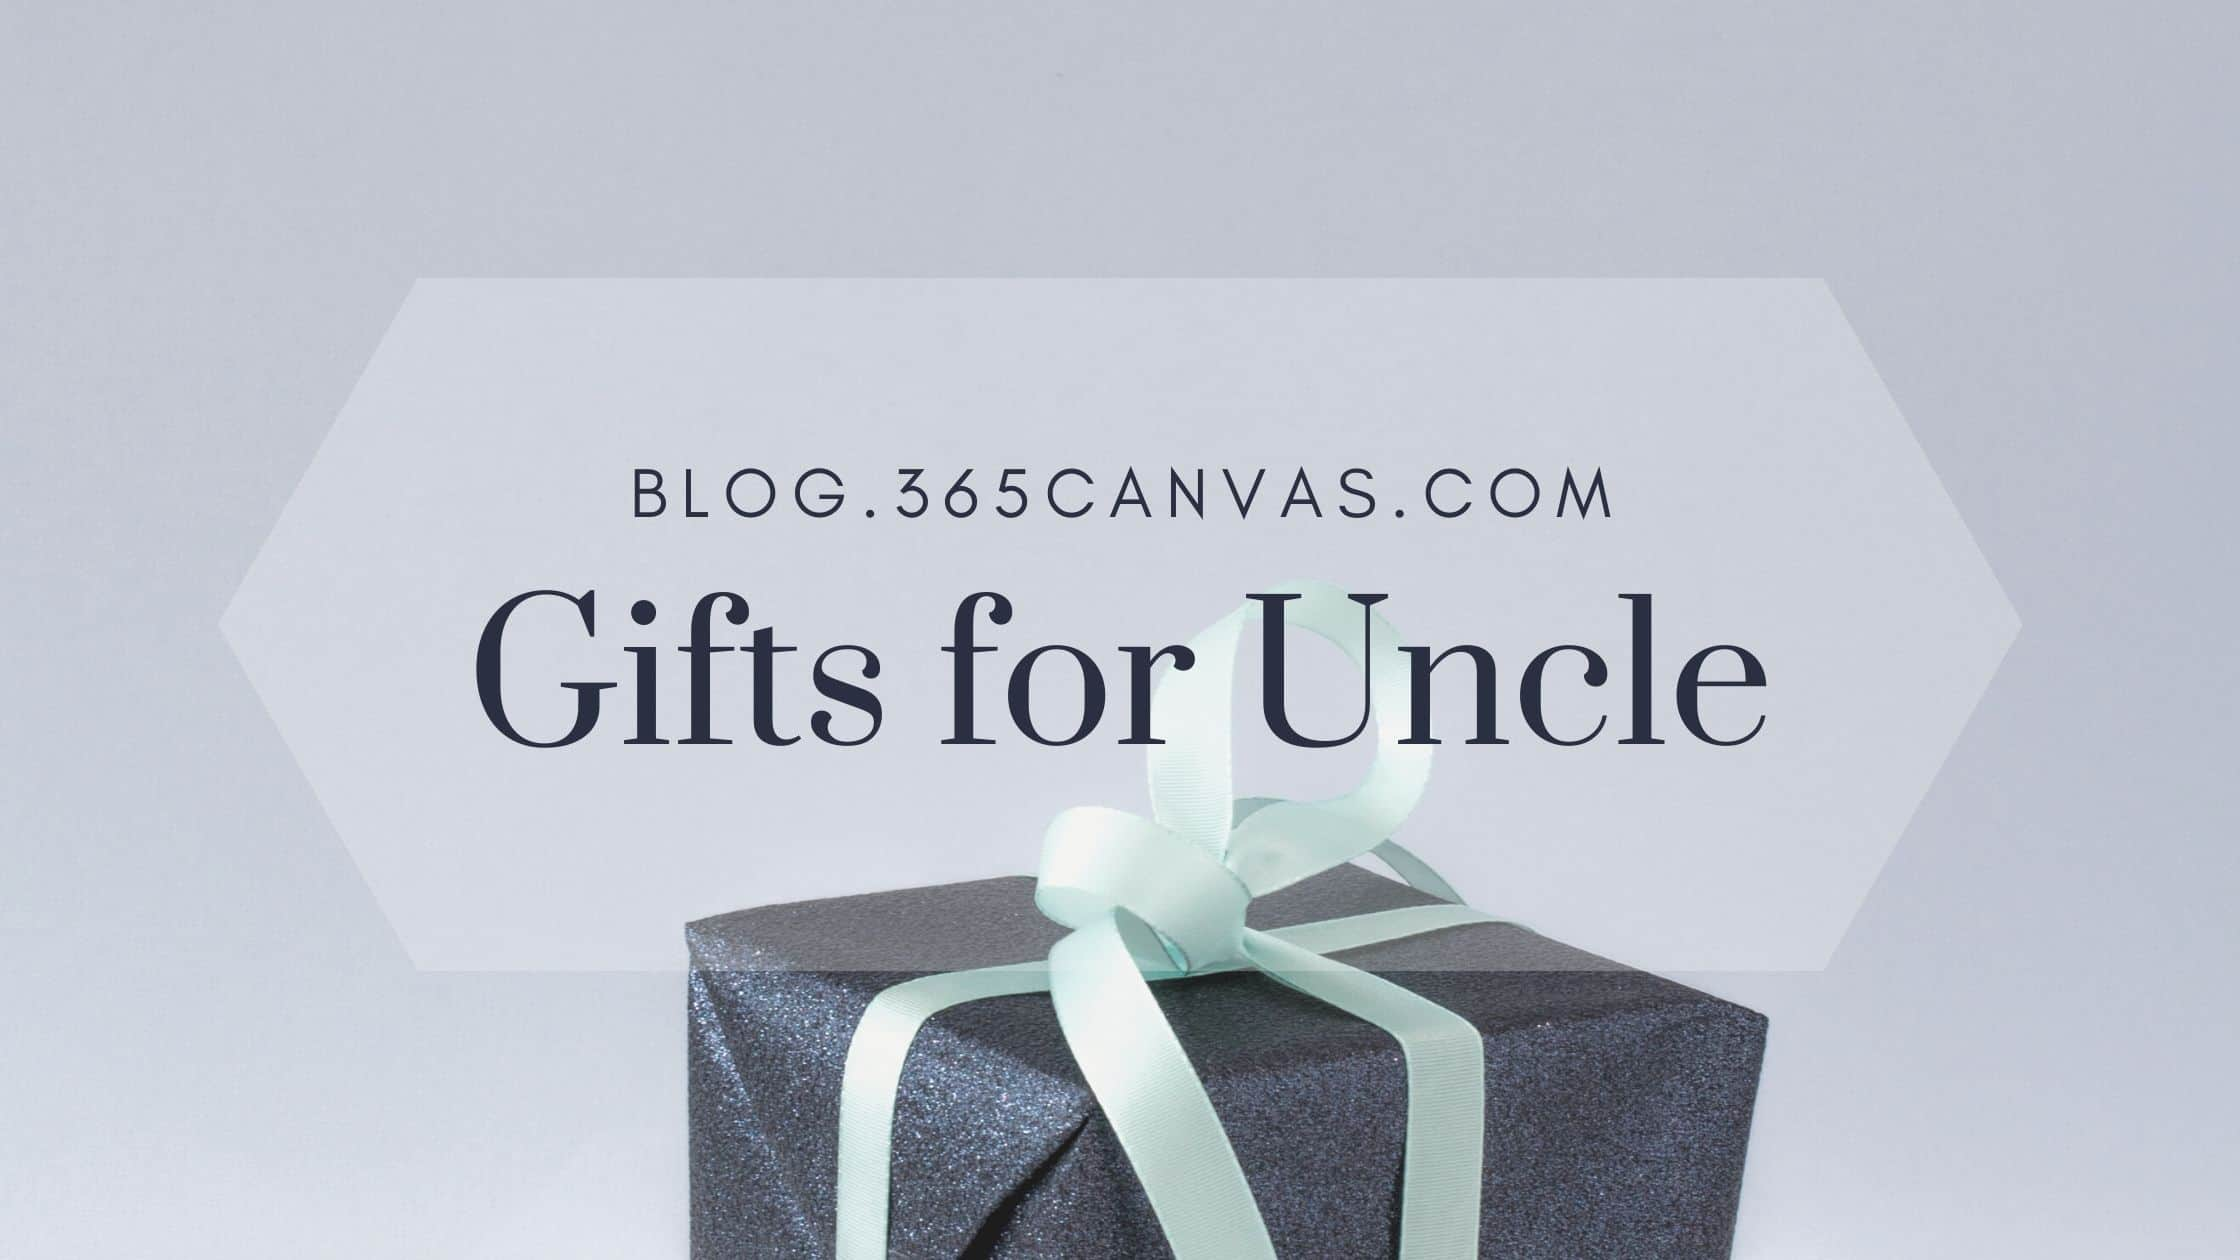 Gifts for Uncle: 50 Coolest Ideas to Make His Day (2021 Gift Guide)